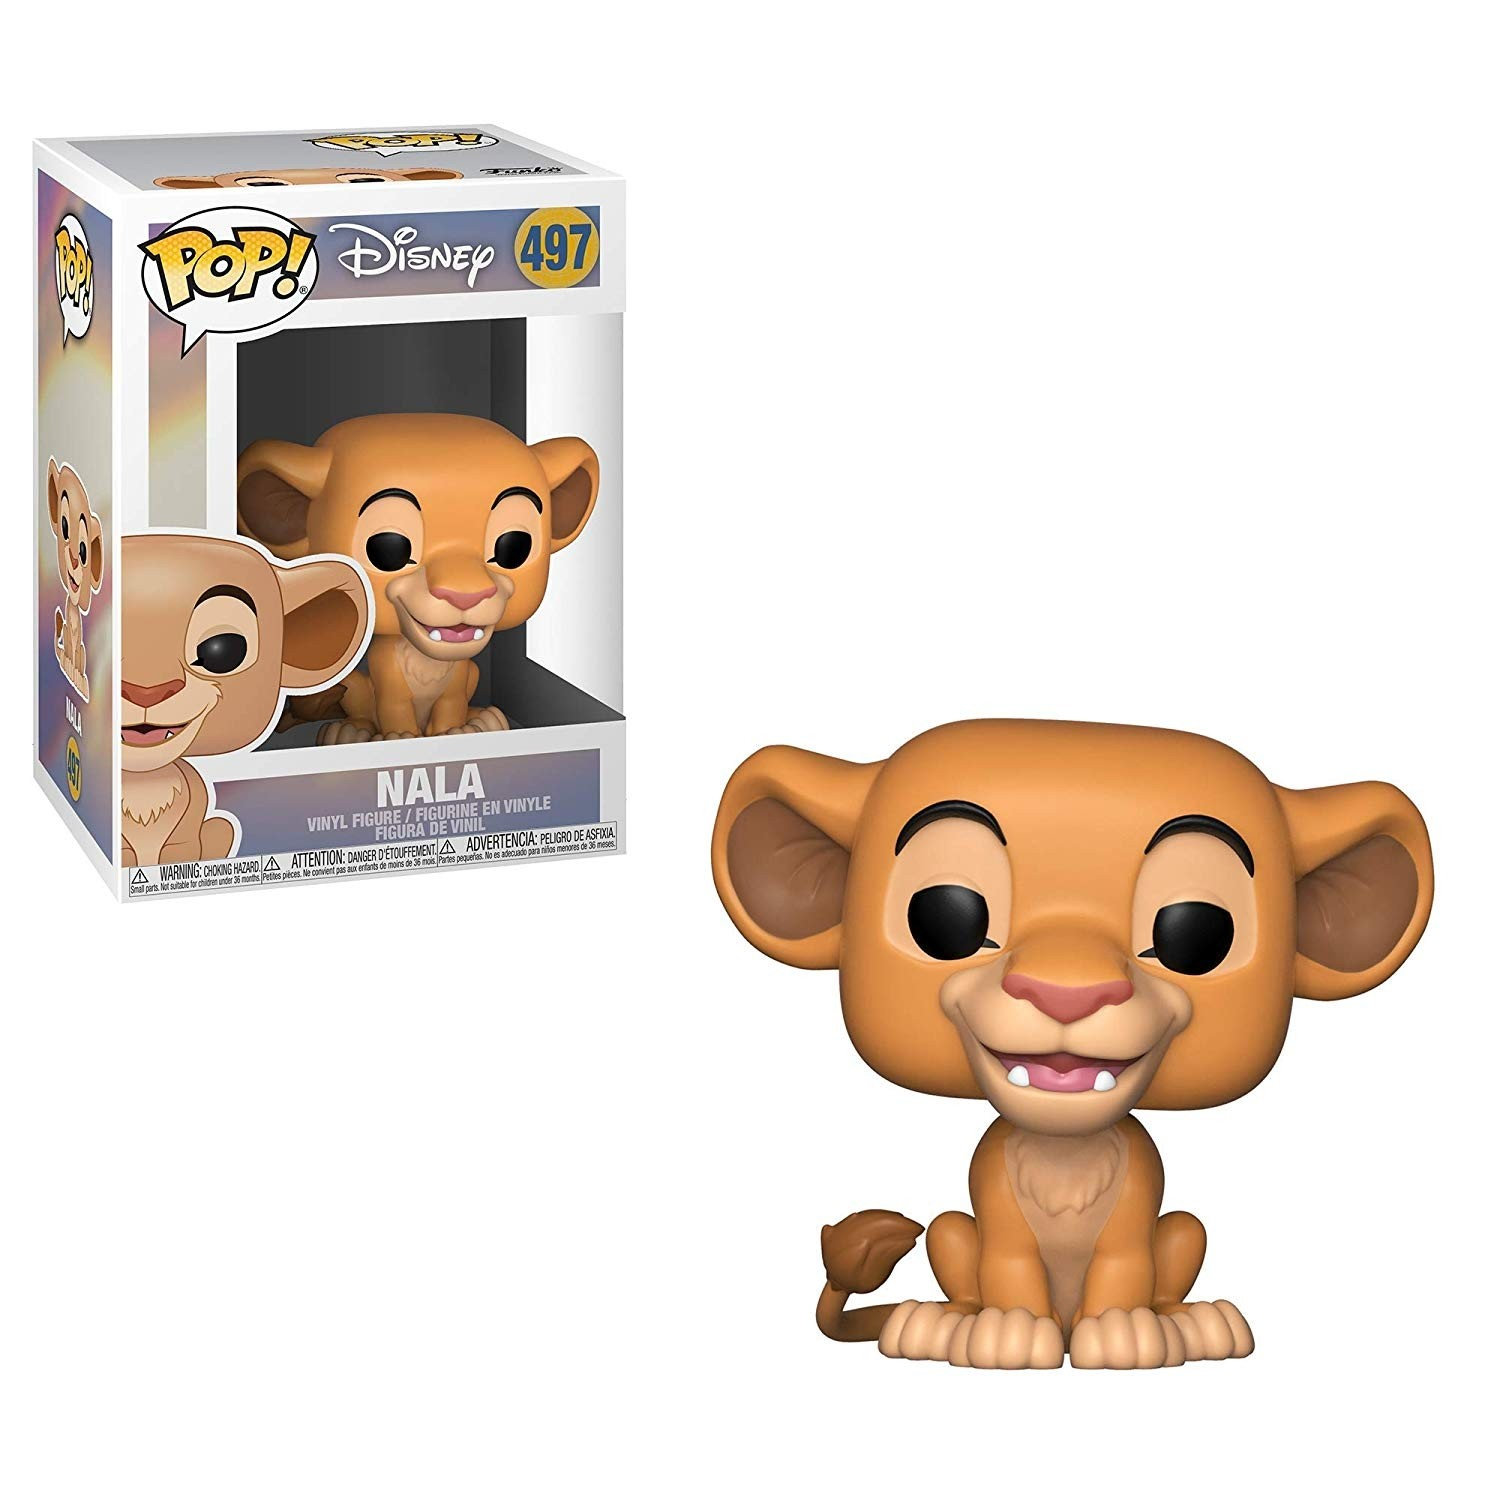 POP! Vinyl: Disney: The Lion King - Nala